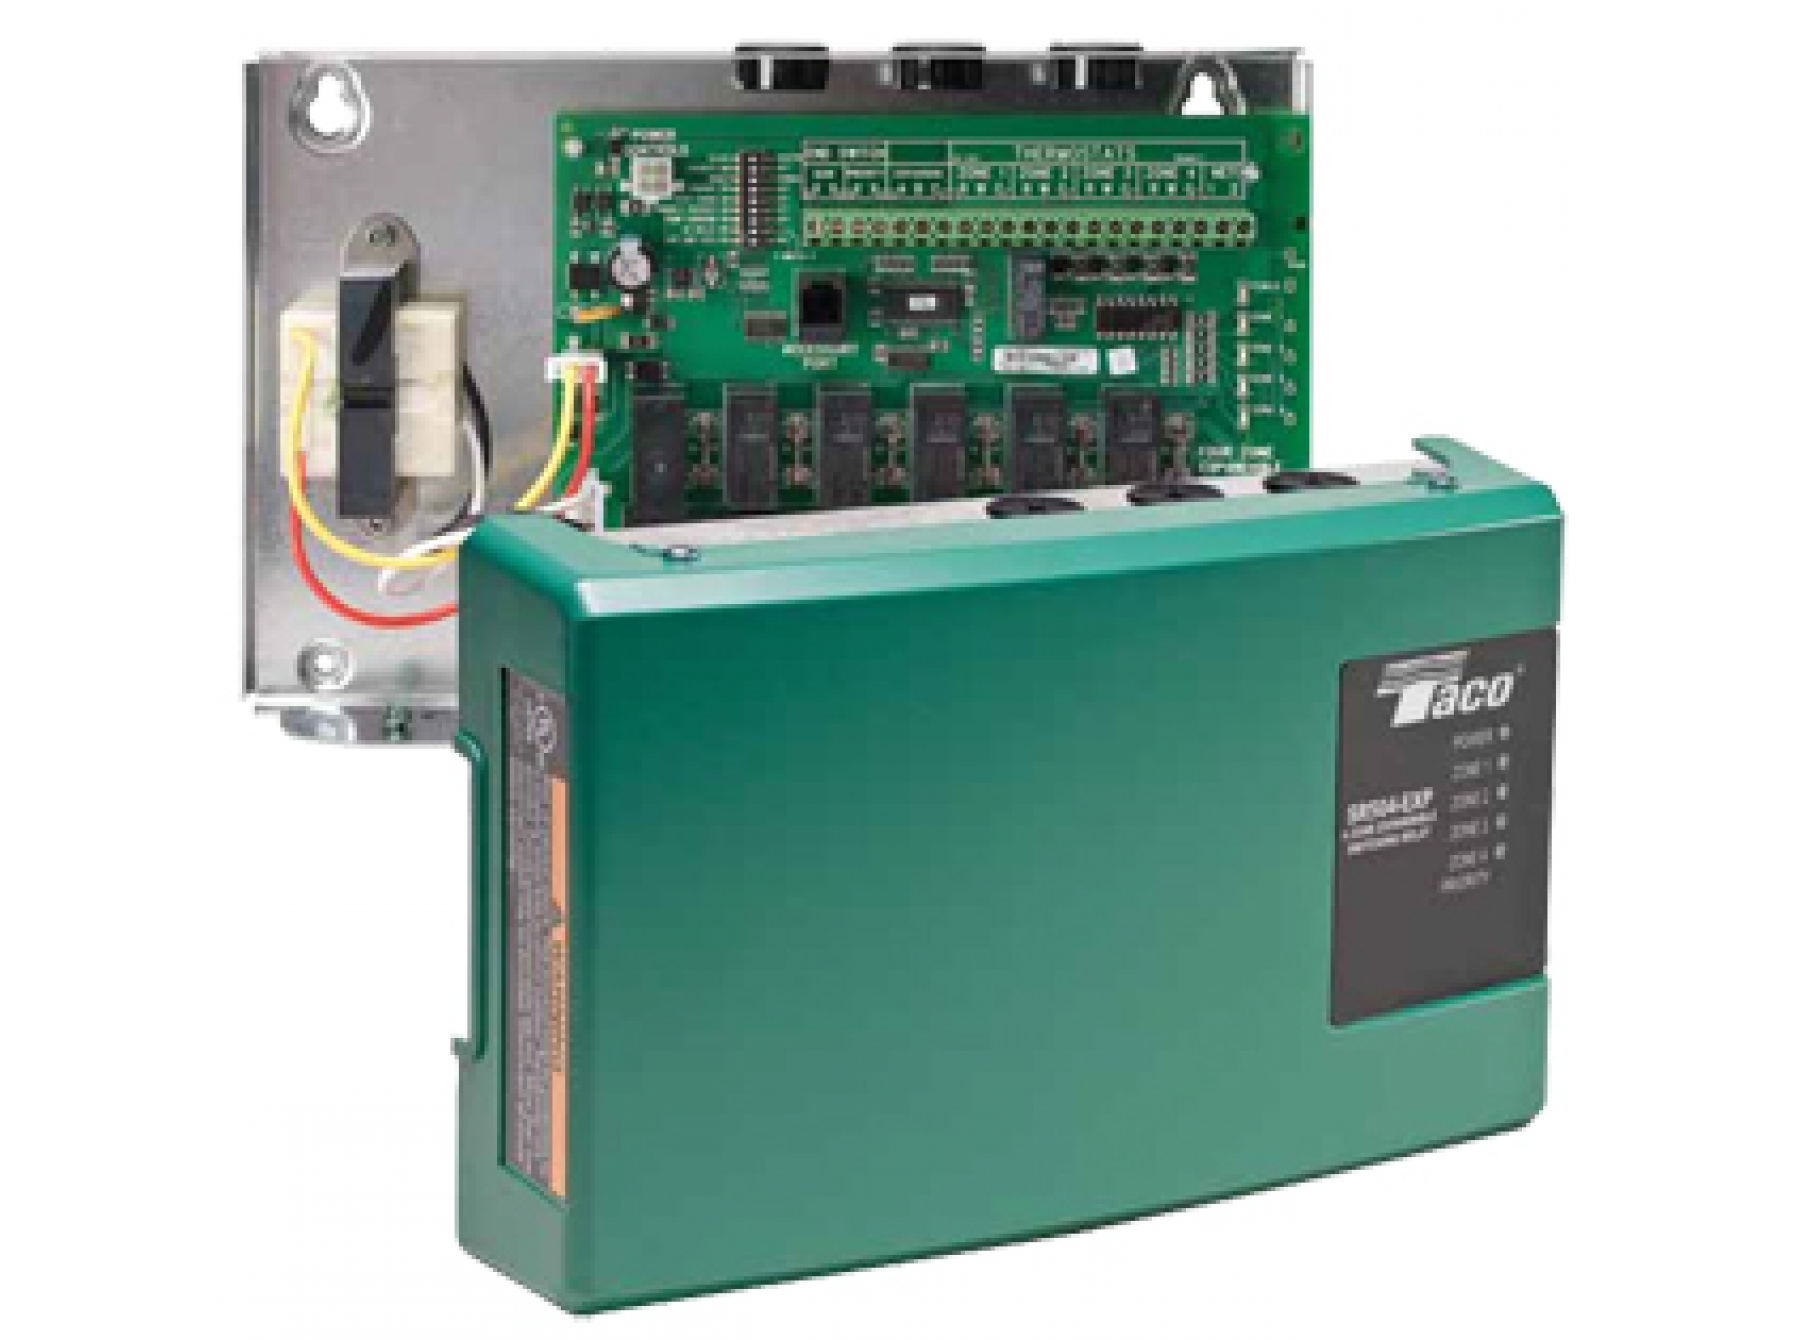 6 Zone Switching Relaytaco Sr506 Wiring Diagram 25 Taco Expandable Relay Relays Available In Canada Ward Heating